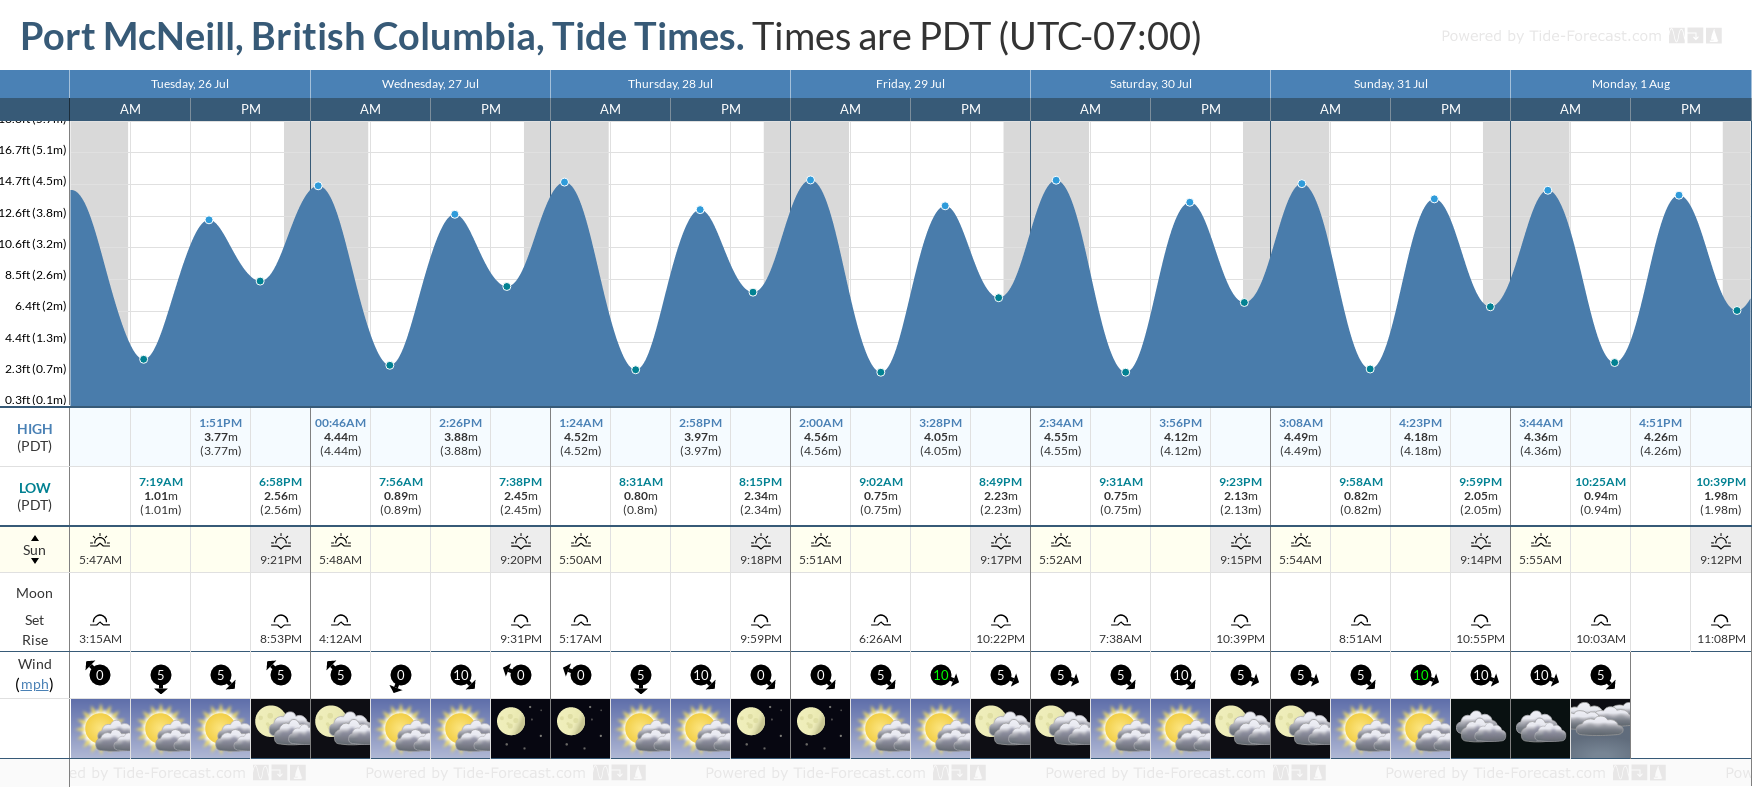 Port McNeill, British Columbia Tide Chart including high and low tide tide times for the next 7 days